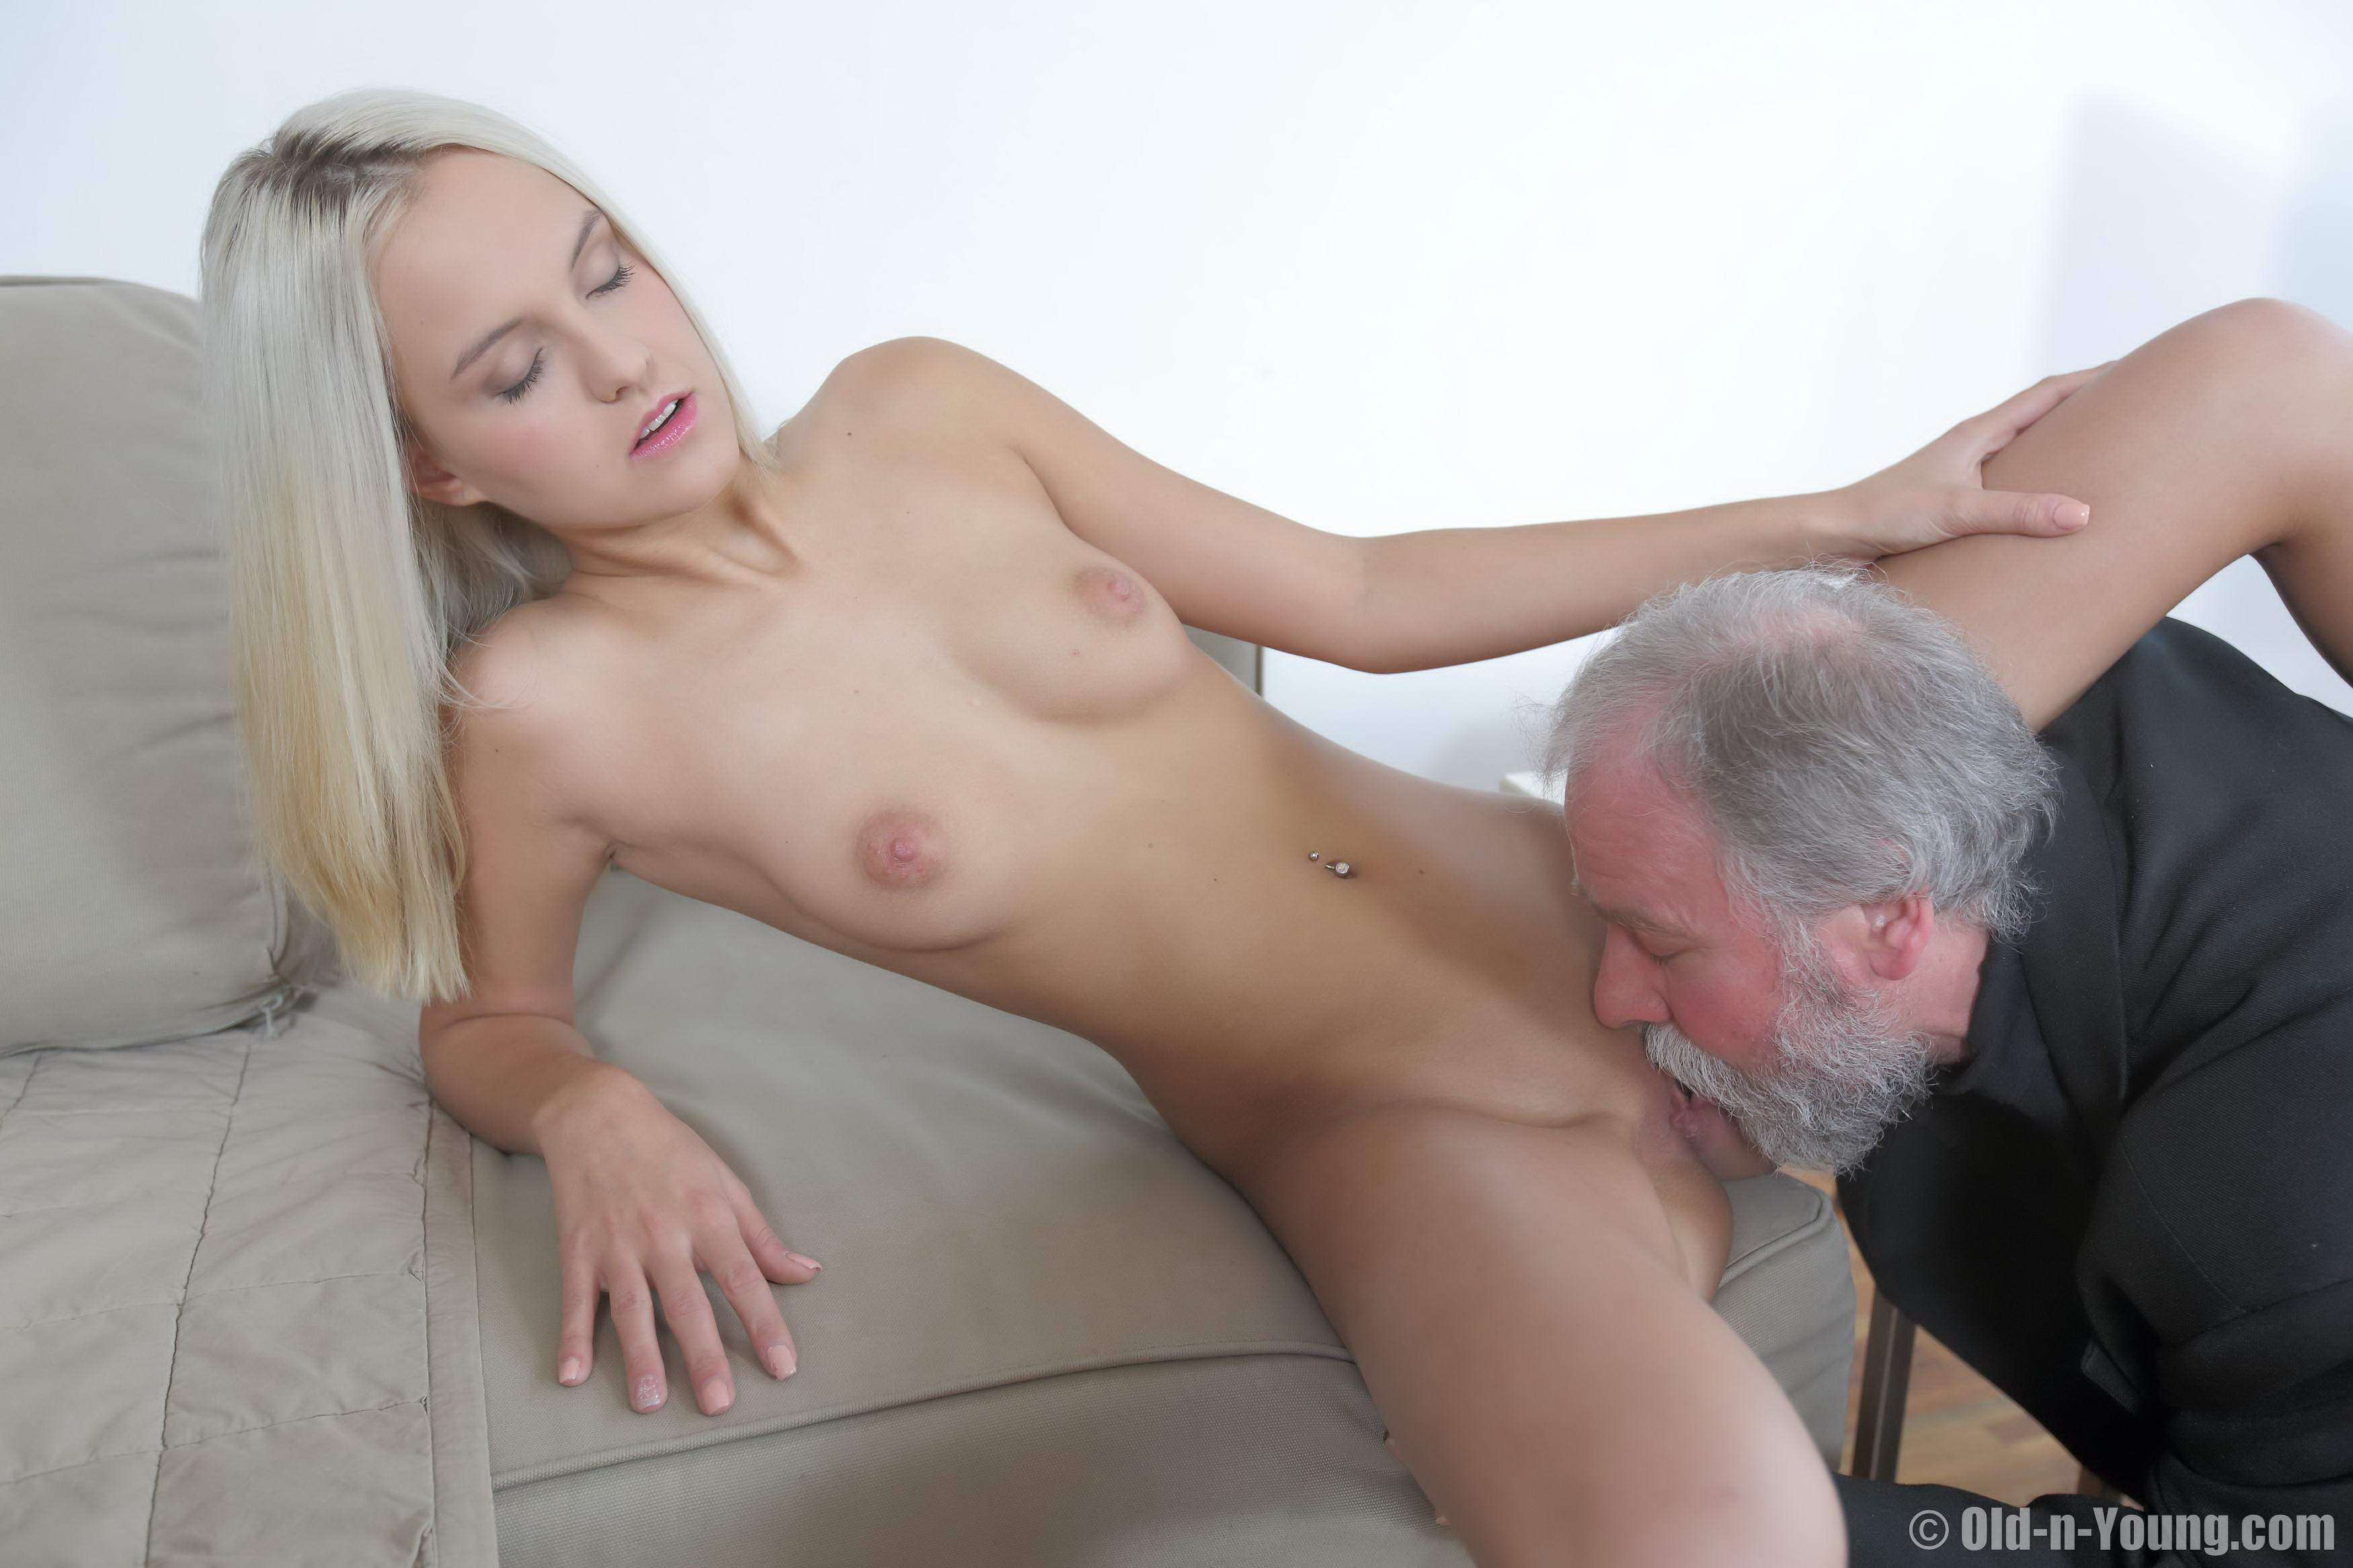 girl fucked in both holes